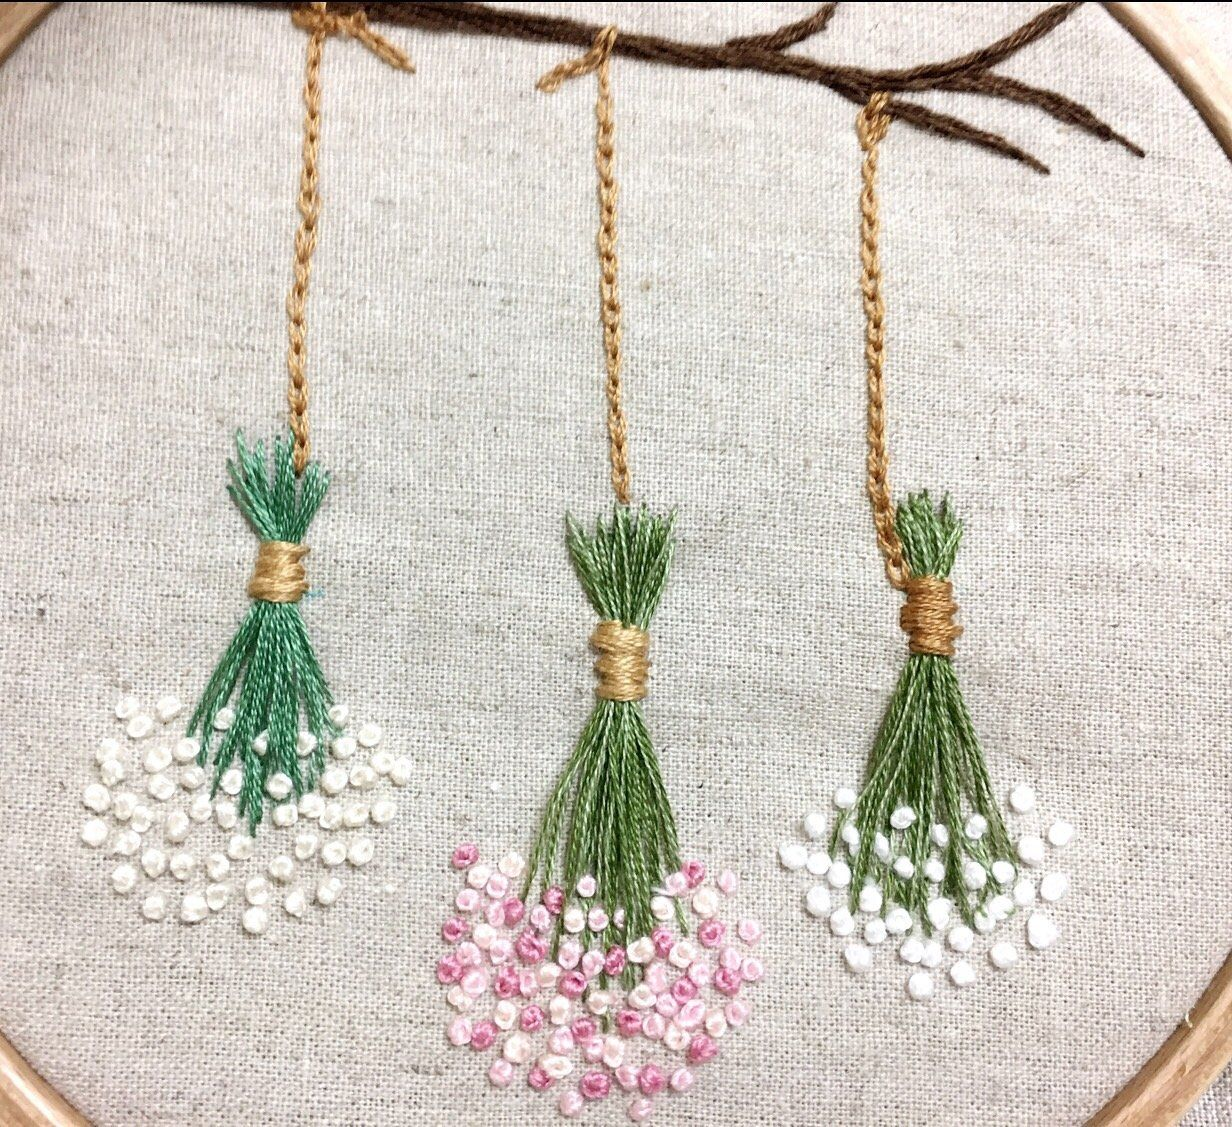 Pin by cathrine sandén on broderi pinterest embroidery hand